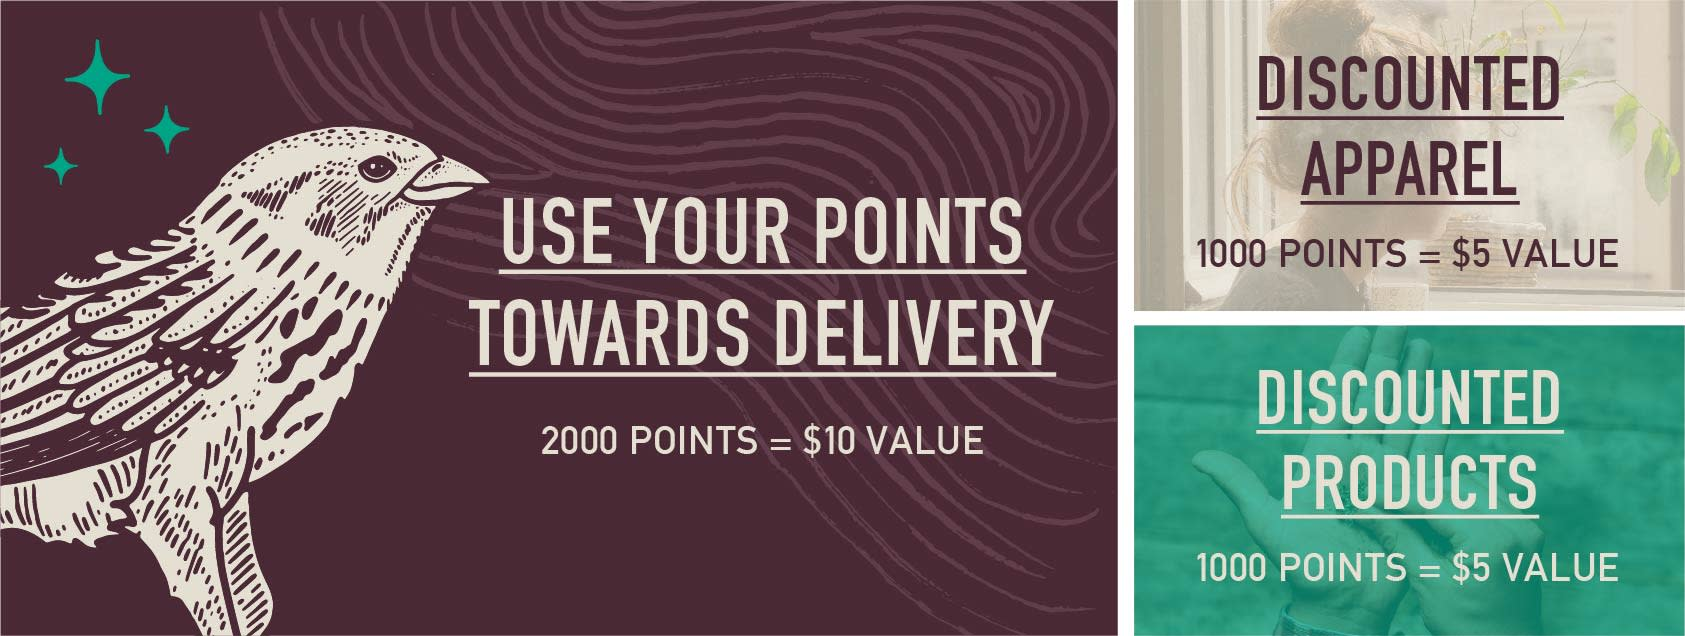 Use your points towards delivery, discounted apparel, and discounted products. 2000 points = $10 value, 1000 points = $5 value